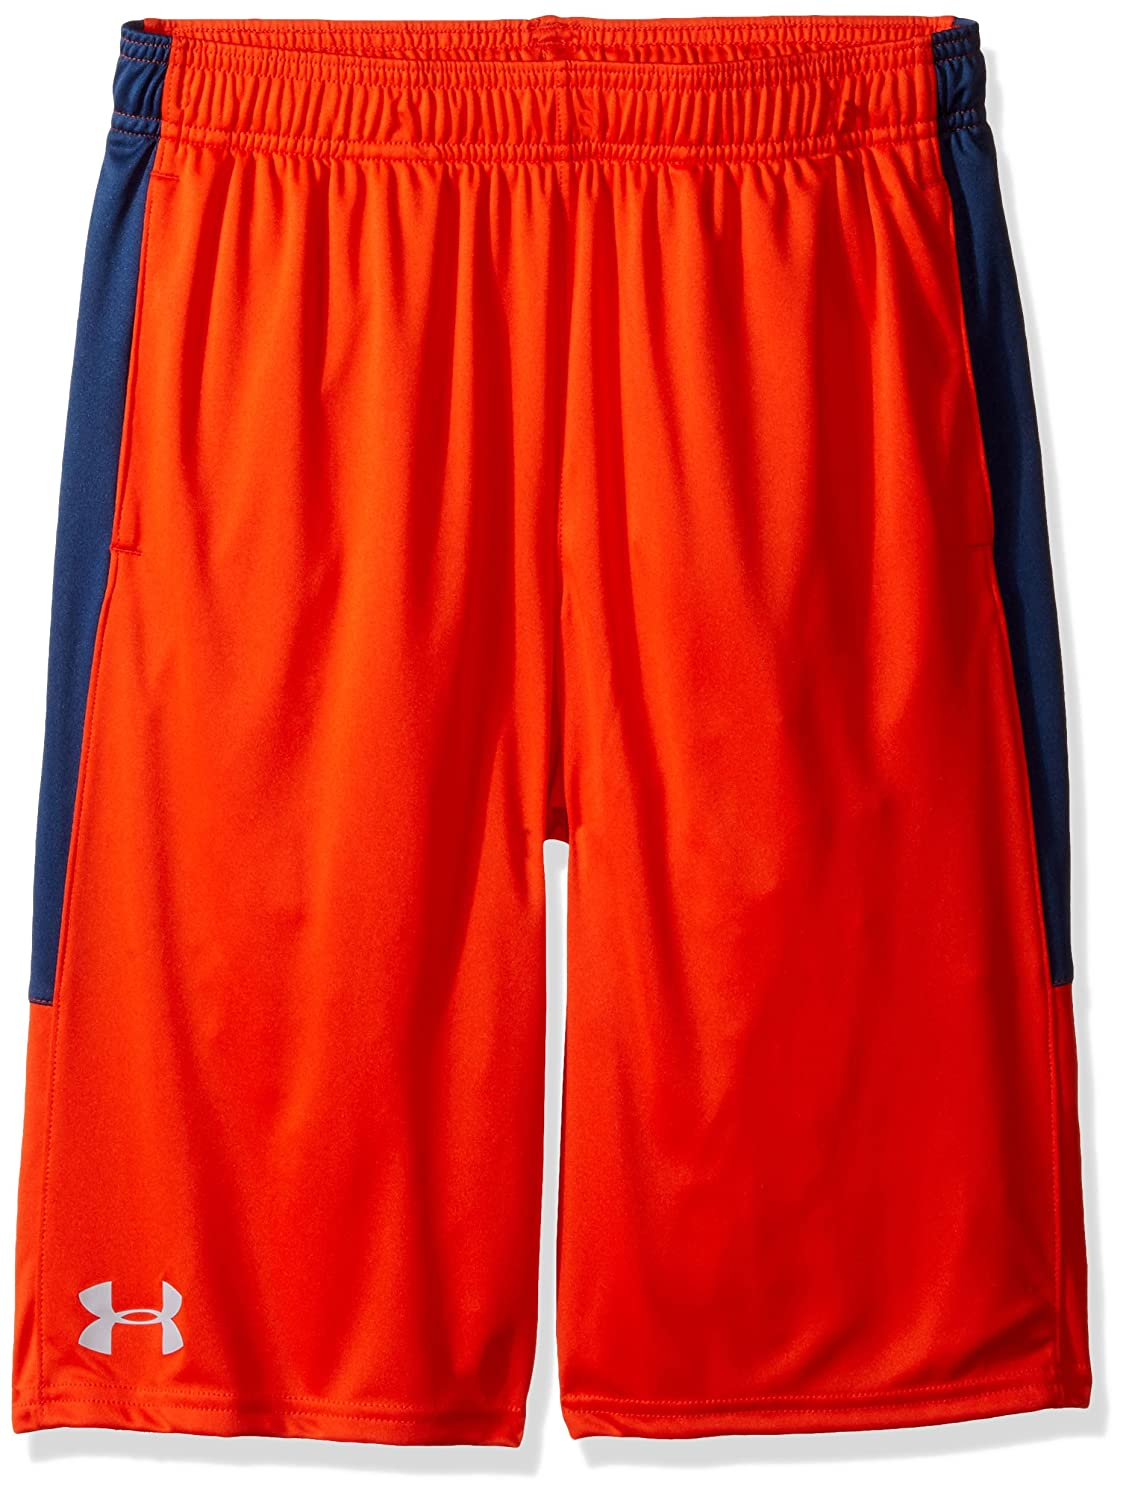 Under Armour Boys Athletic Basketball Shorts 1299989 Black Red YOUTH Size XL